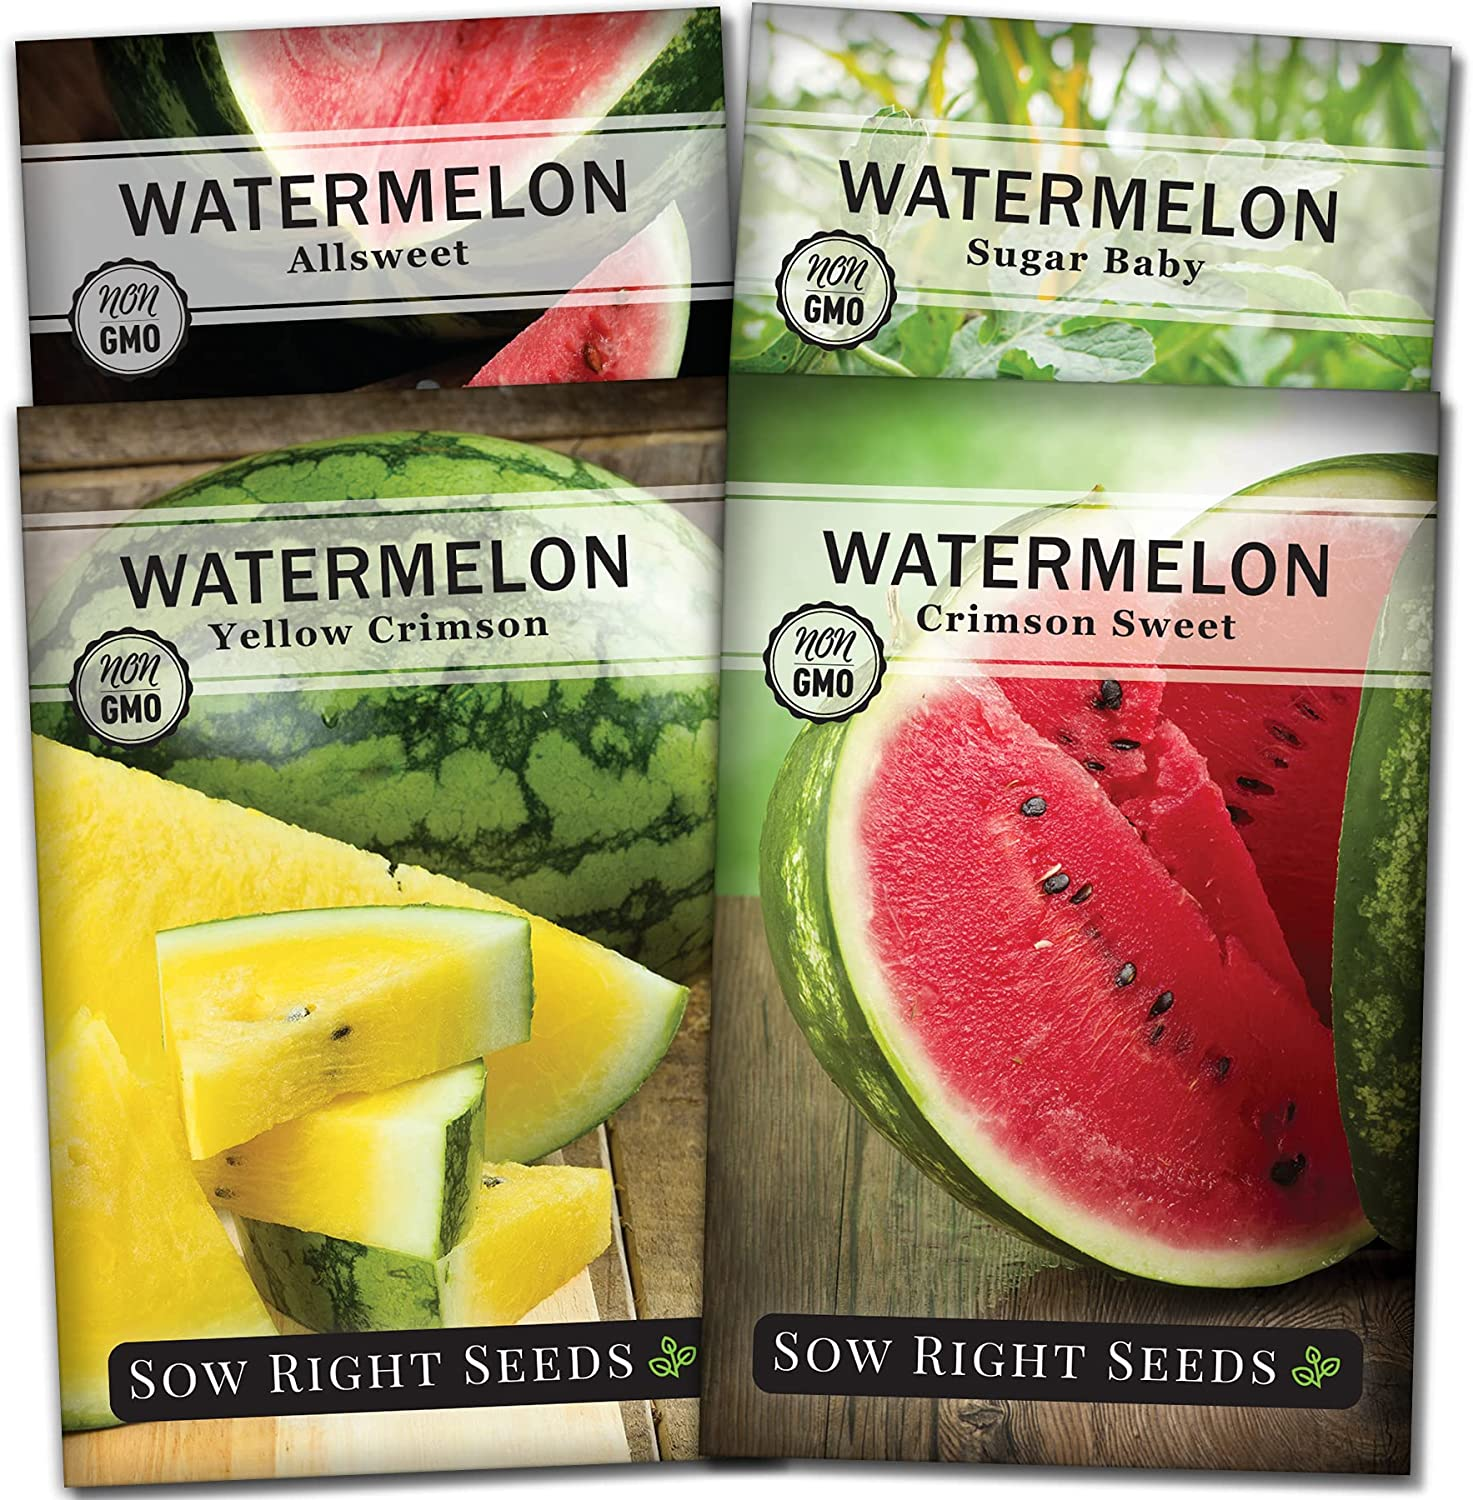 Sow Right Seeds - Watermelon Seed Collection for Planting - All Sweet, Crimson Sweet, Sugar Baby, and Yellow Crimson Melons. Non-GMO Heirloom Seeds to Plant a Home Vegetable Garden